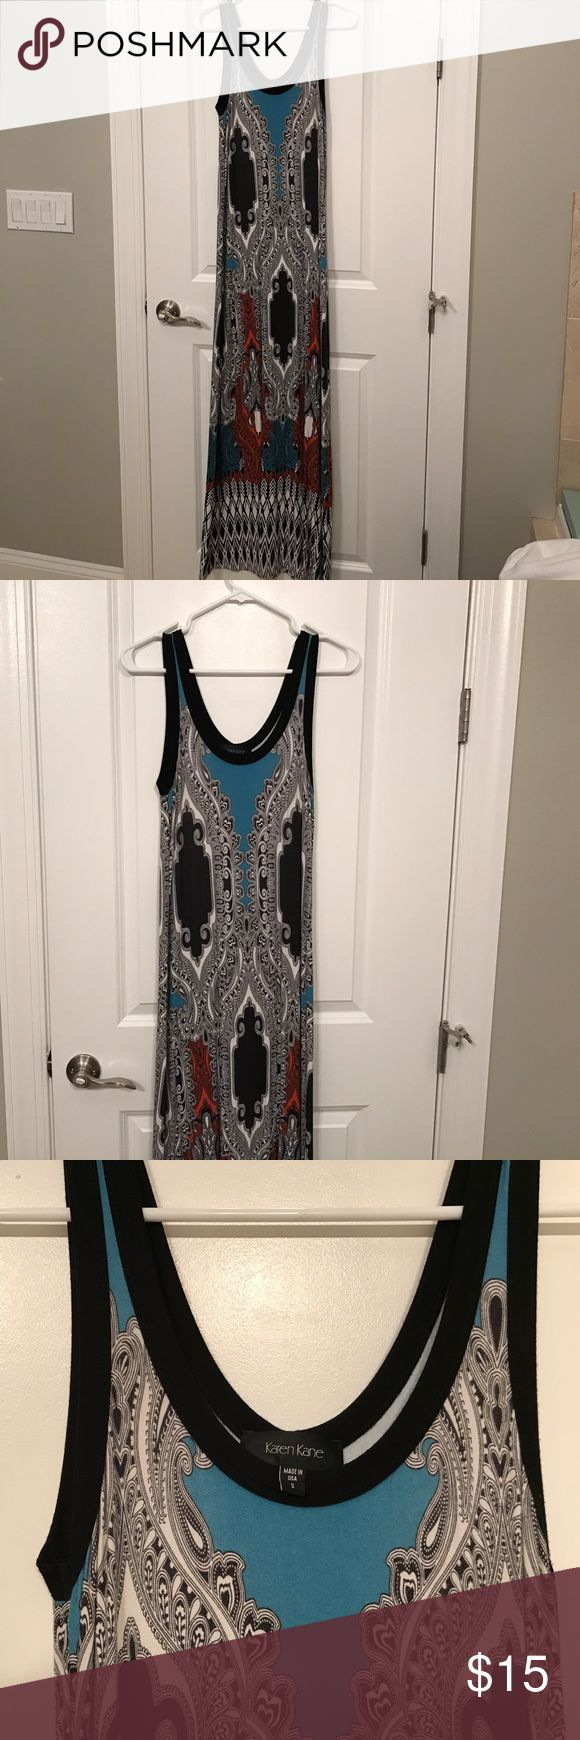 Karen Kane Maxi Dress Cotton Maxi dress, full of colors and designs that makes your shape look slimming!!  Size small.  Great for summer dates, BBQs or even a pool party!! Let me know if you'd like more pictures:) Karen Kane Dresses Maxi